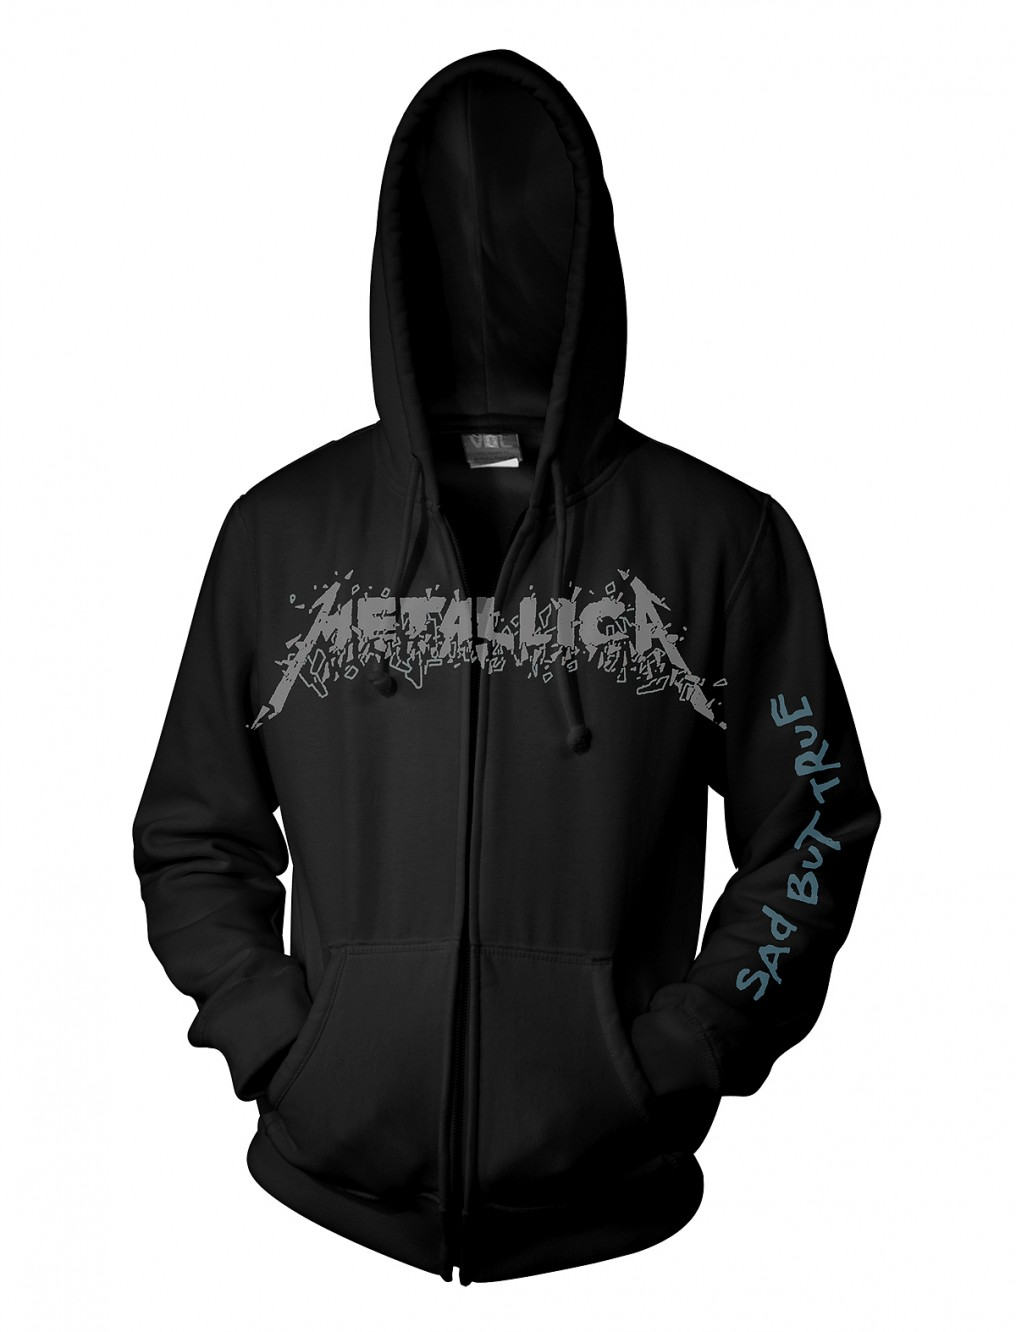 rtmtl015_-_metallica-balck_sad_but_true_zip_hood_front_